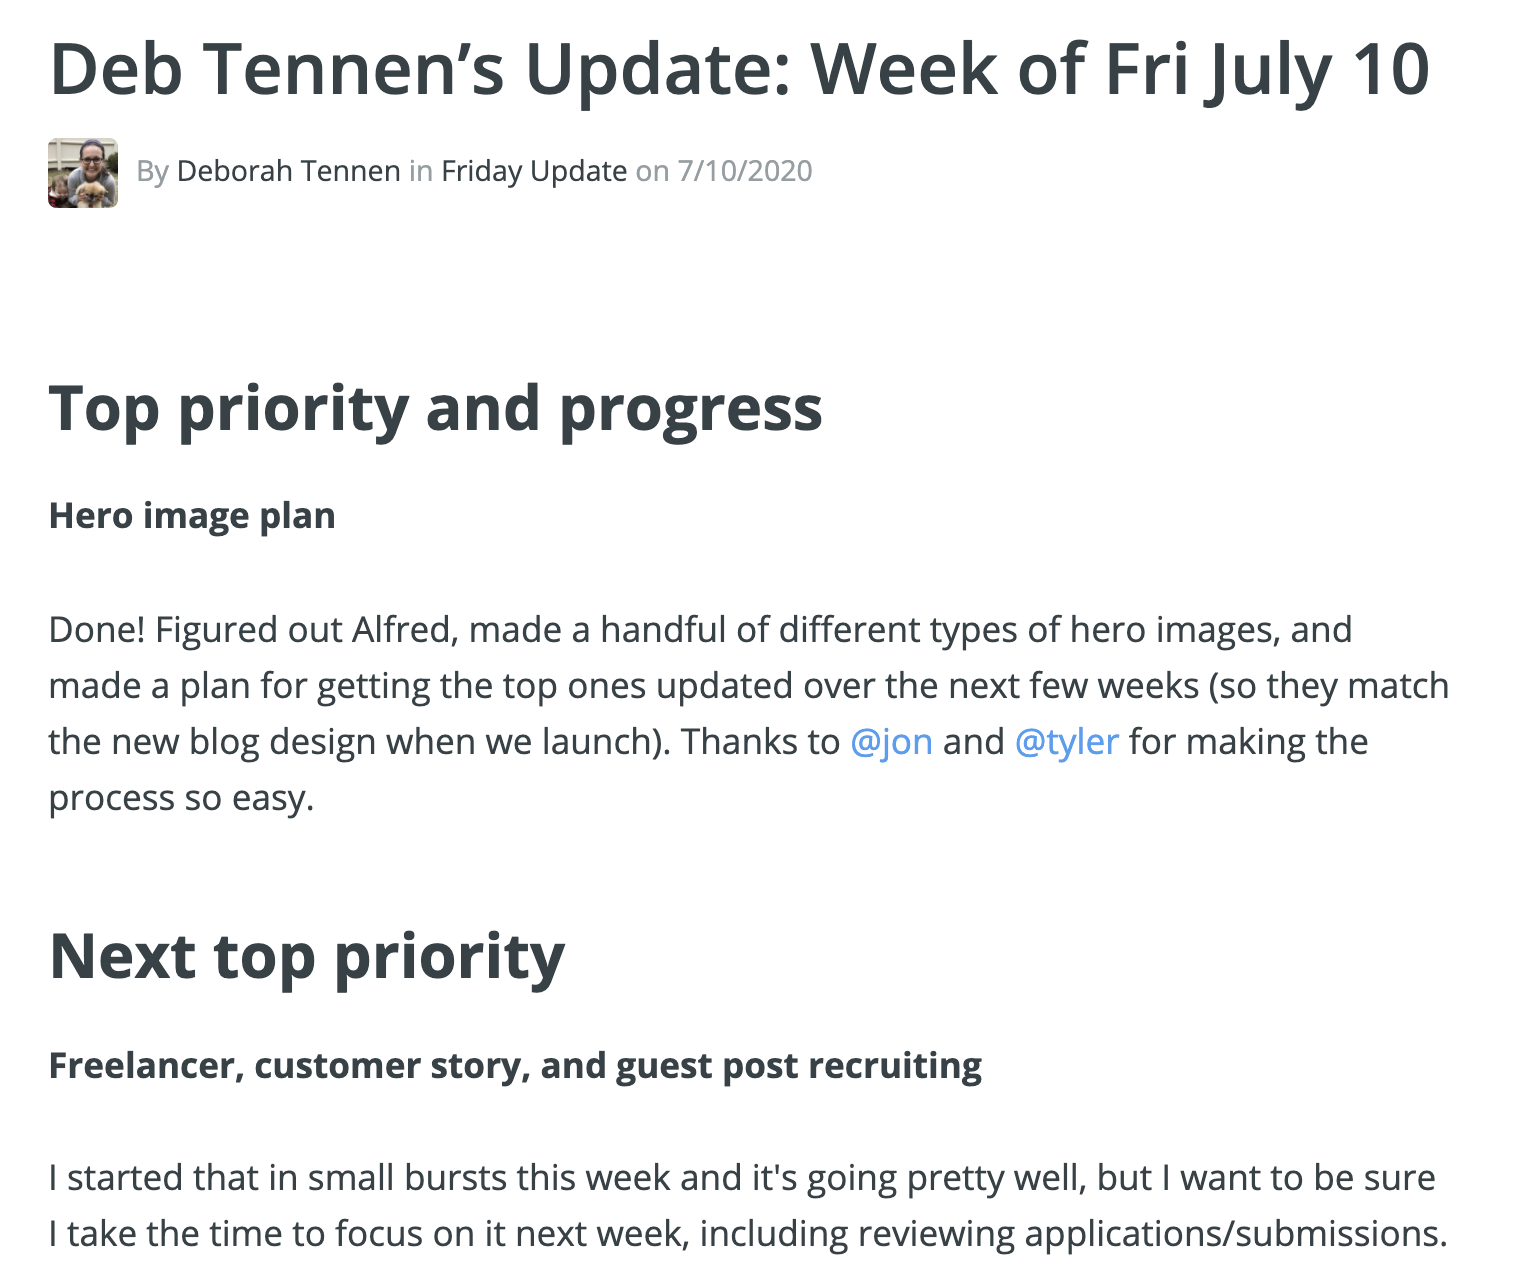 An example of a Friday update, with a top priority for this week and next